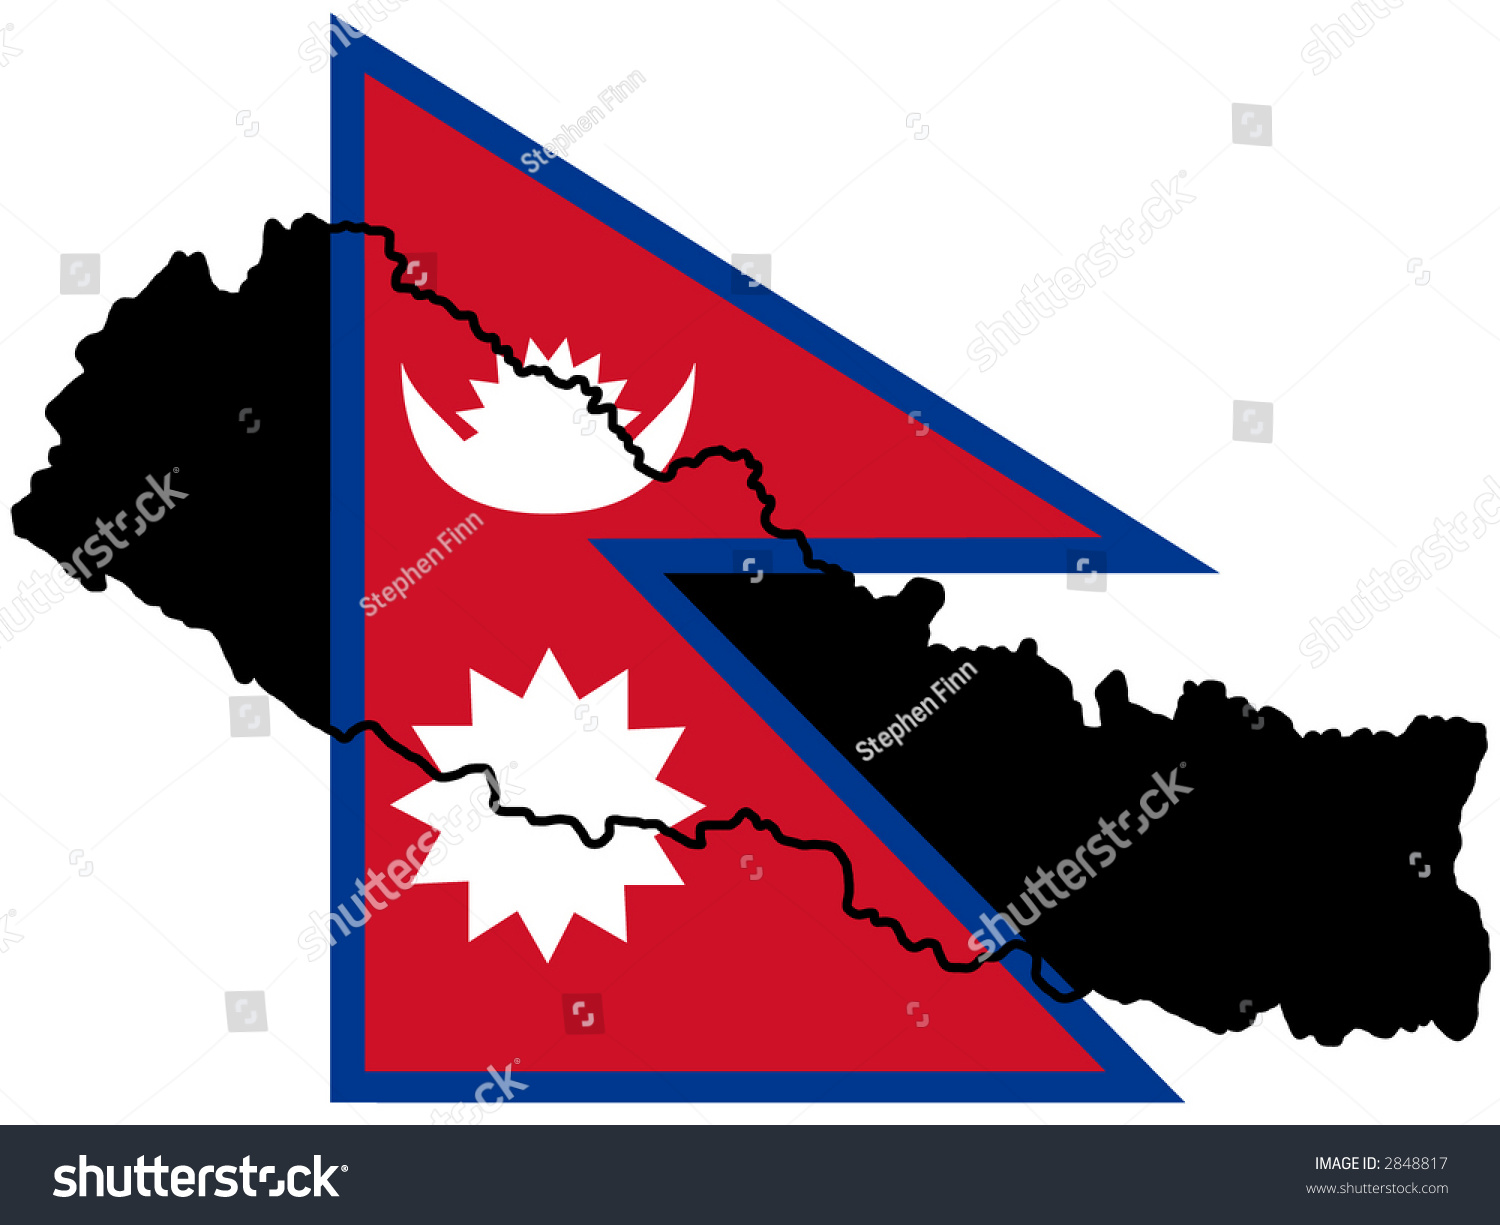 Map Nepal Nepalese Flag Illustration Stock Vector (Royalty Free ...